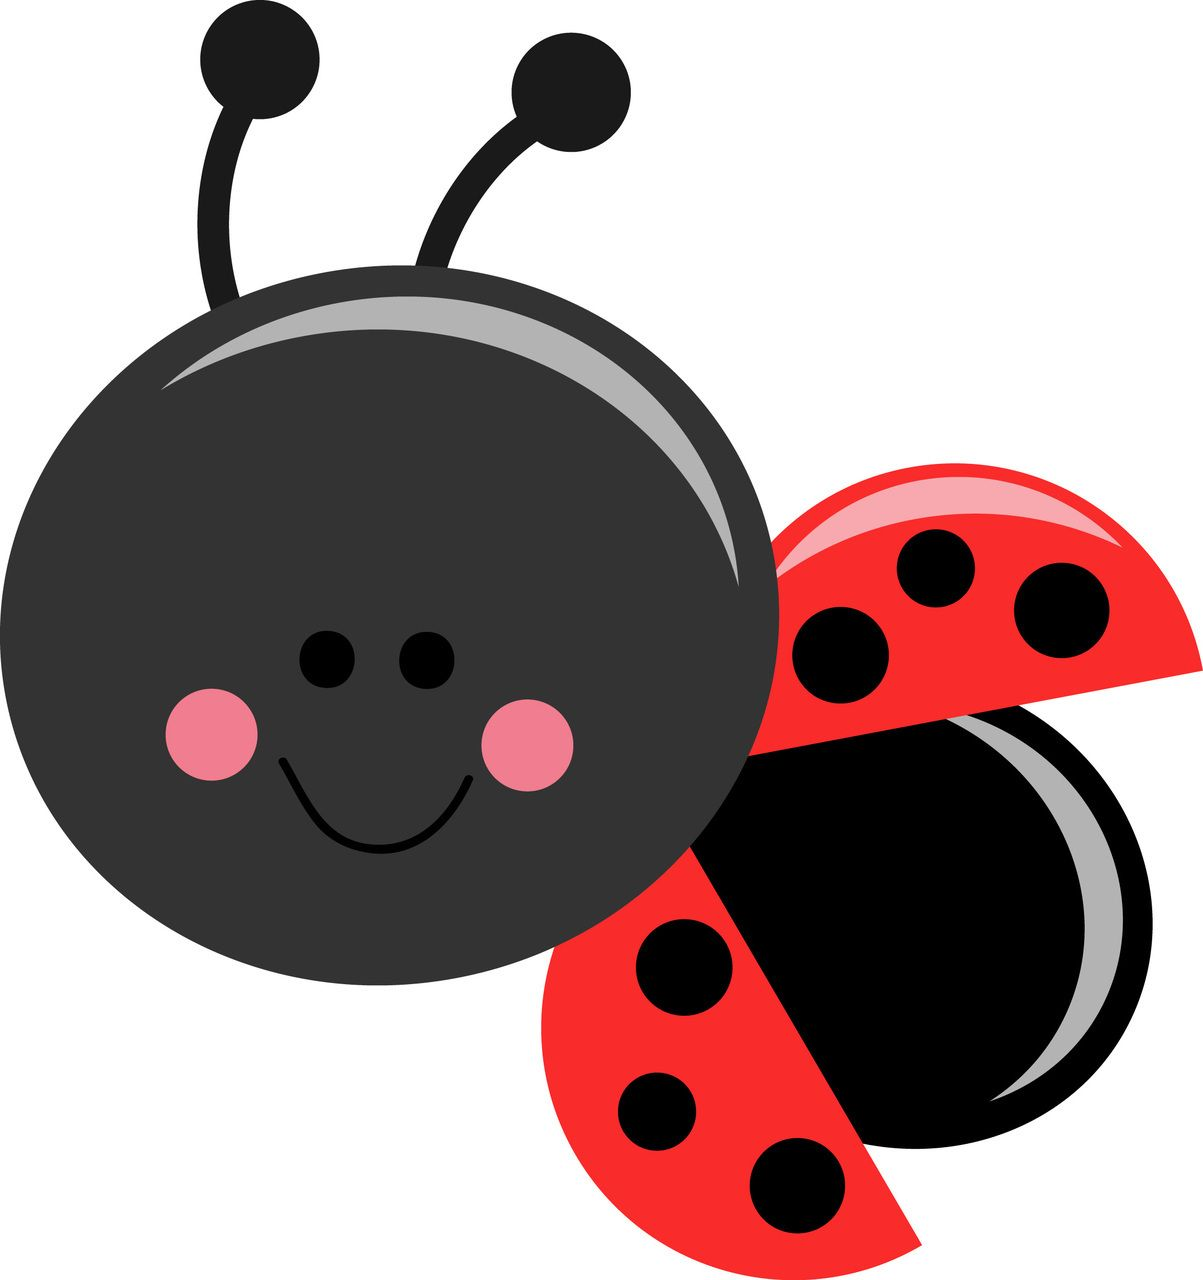 Clipart coccinelles picture royalty free Coccinelle clipart 4 » Clipart Station picture royalty free